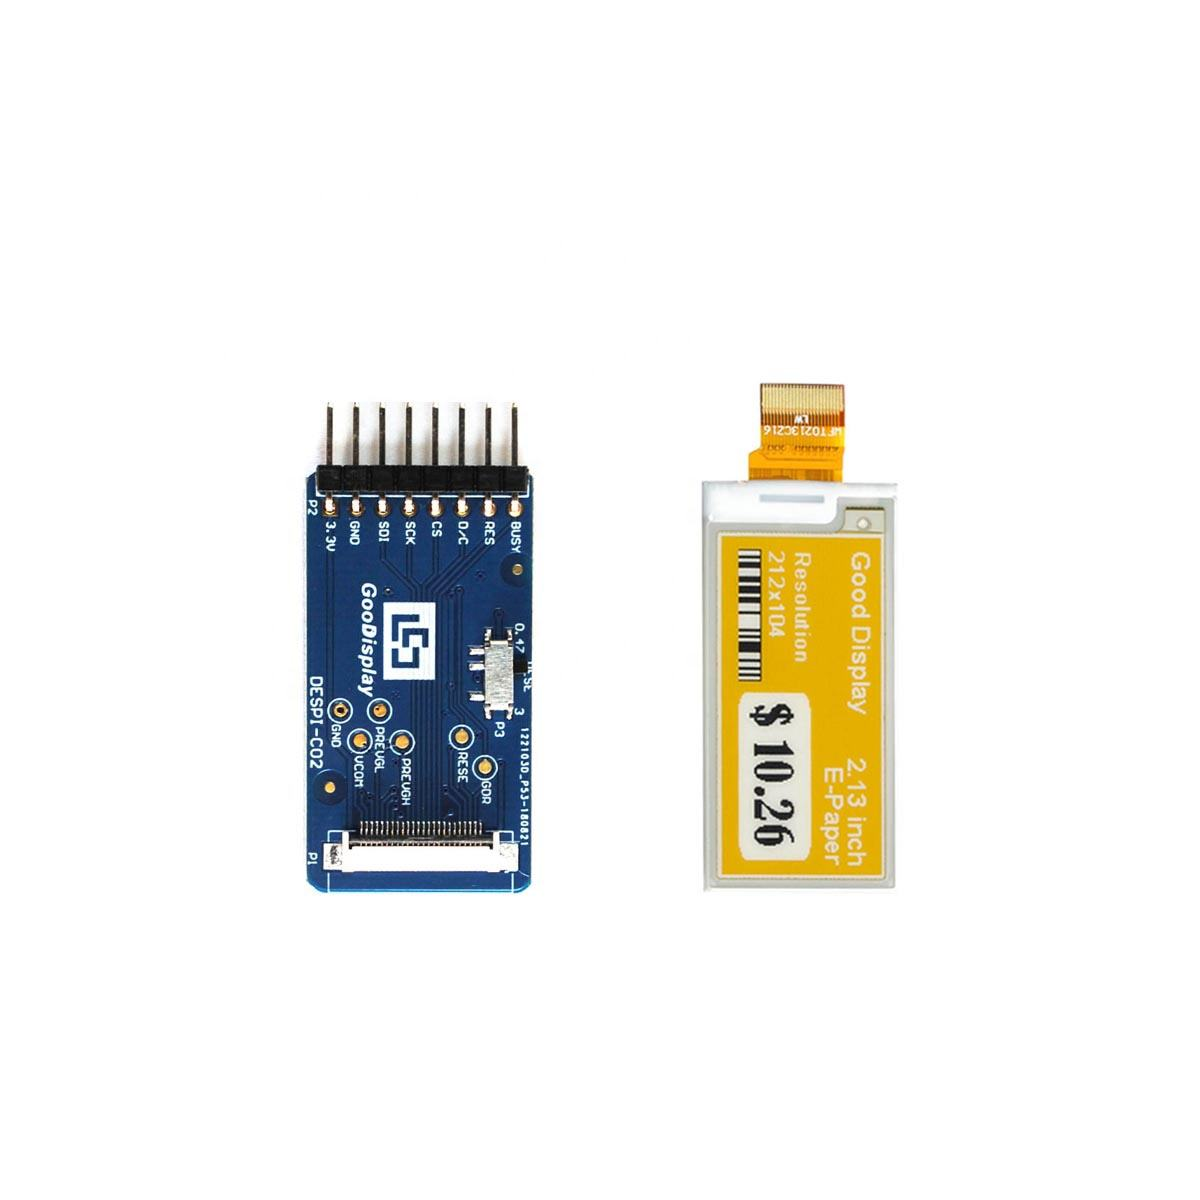 GooDisplay 2.13 <span class=keywords><strong>צבע</strong></span> תצוגת <span class=keywords><strong>epaper</strong></span> עבור STM32 עם מחבר לוח SPI <span class=keywords><strong>Epaper</strong></span>